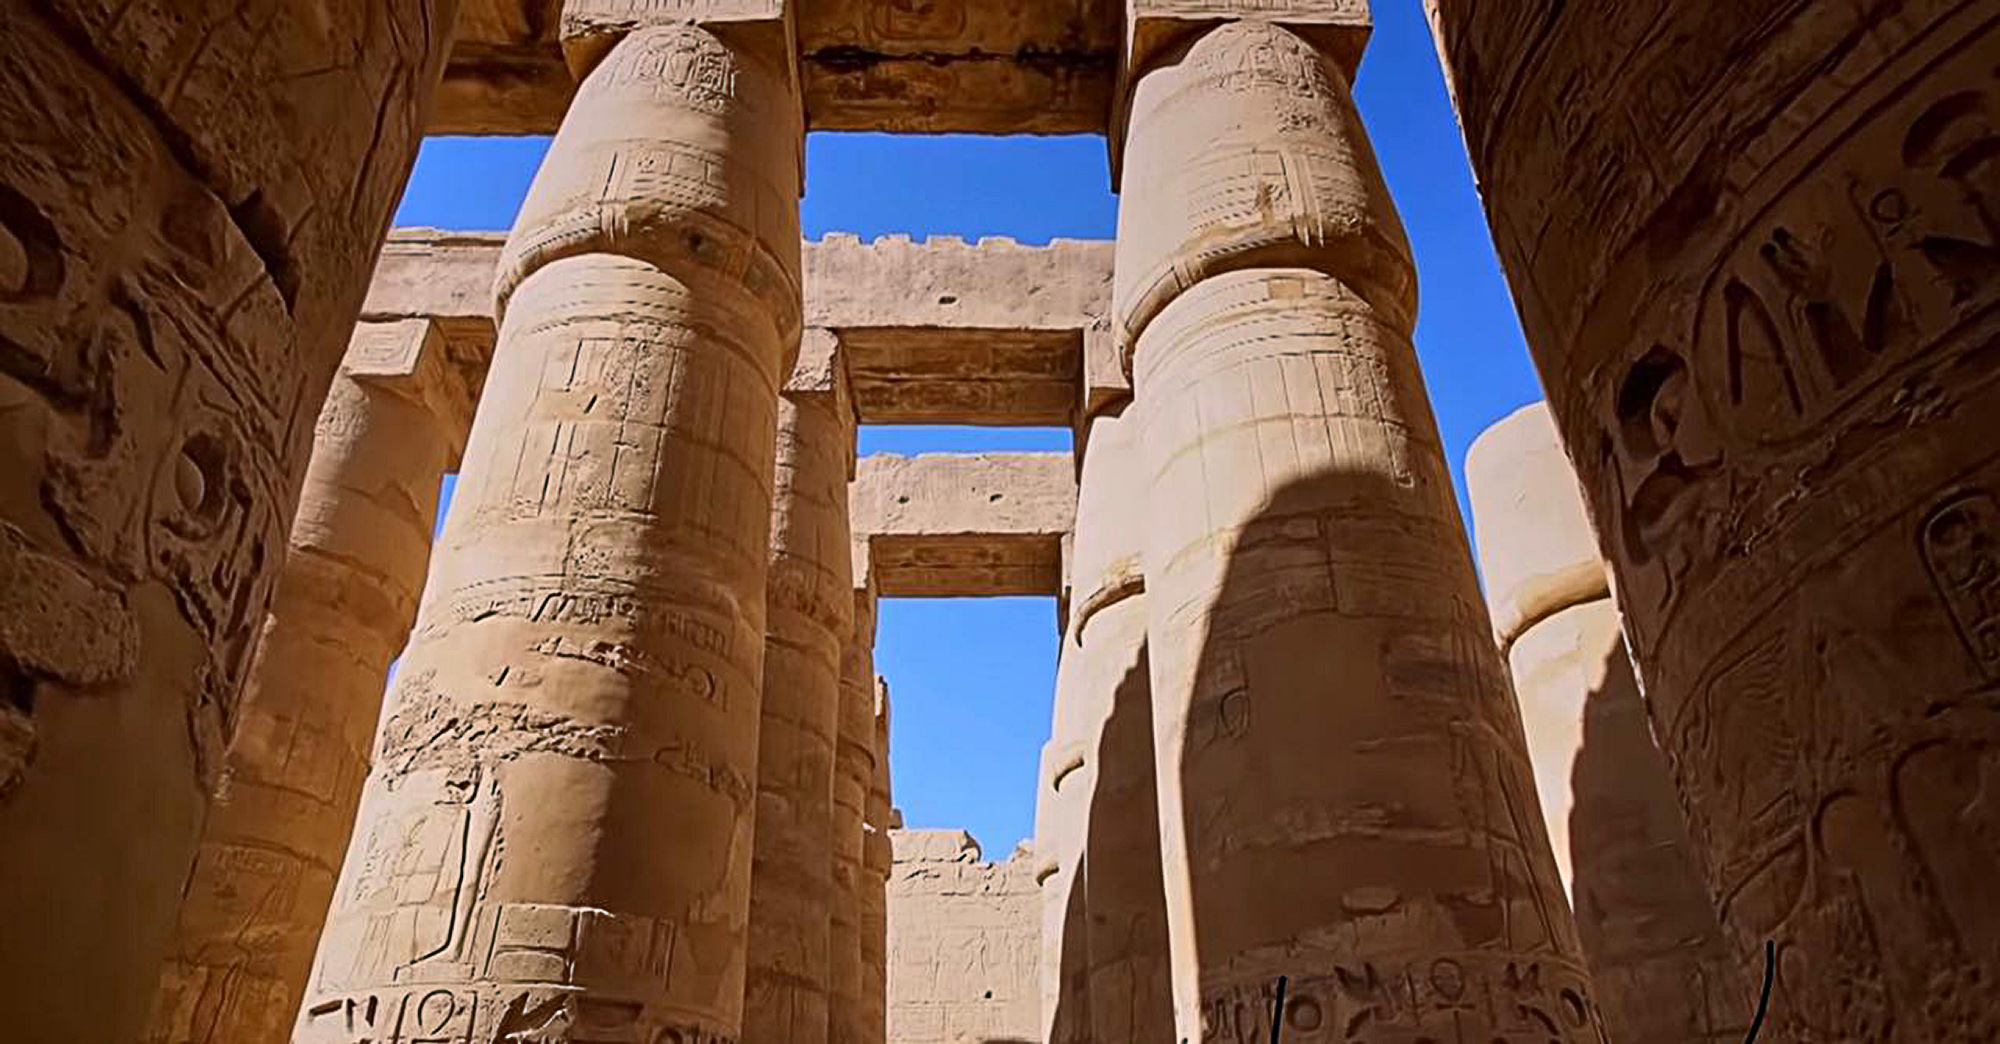 The columns hall of Karnak temple is being restored for a ceremony for the Rams Road Development Project, opening in Luxor, Egypt. (Zenger News)